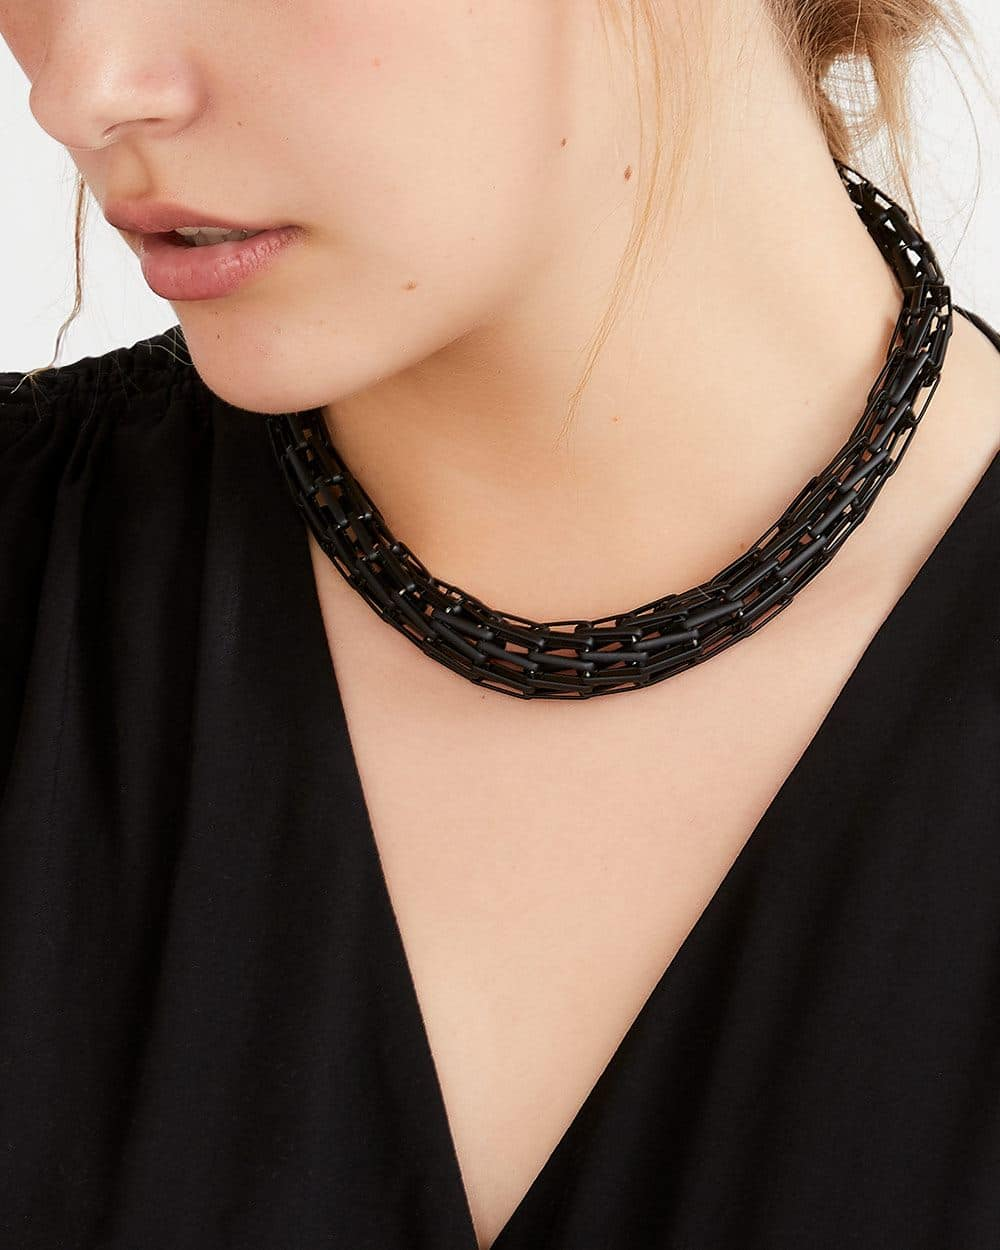 Silicone Structure Necklace